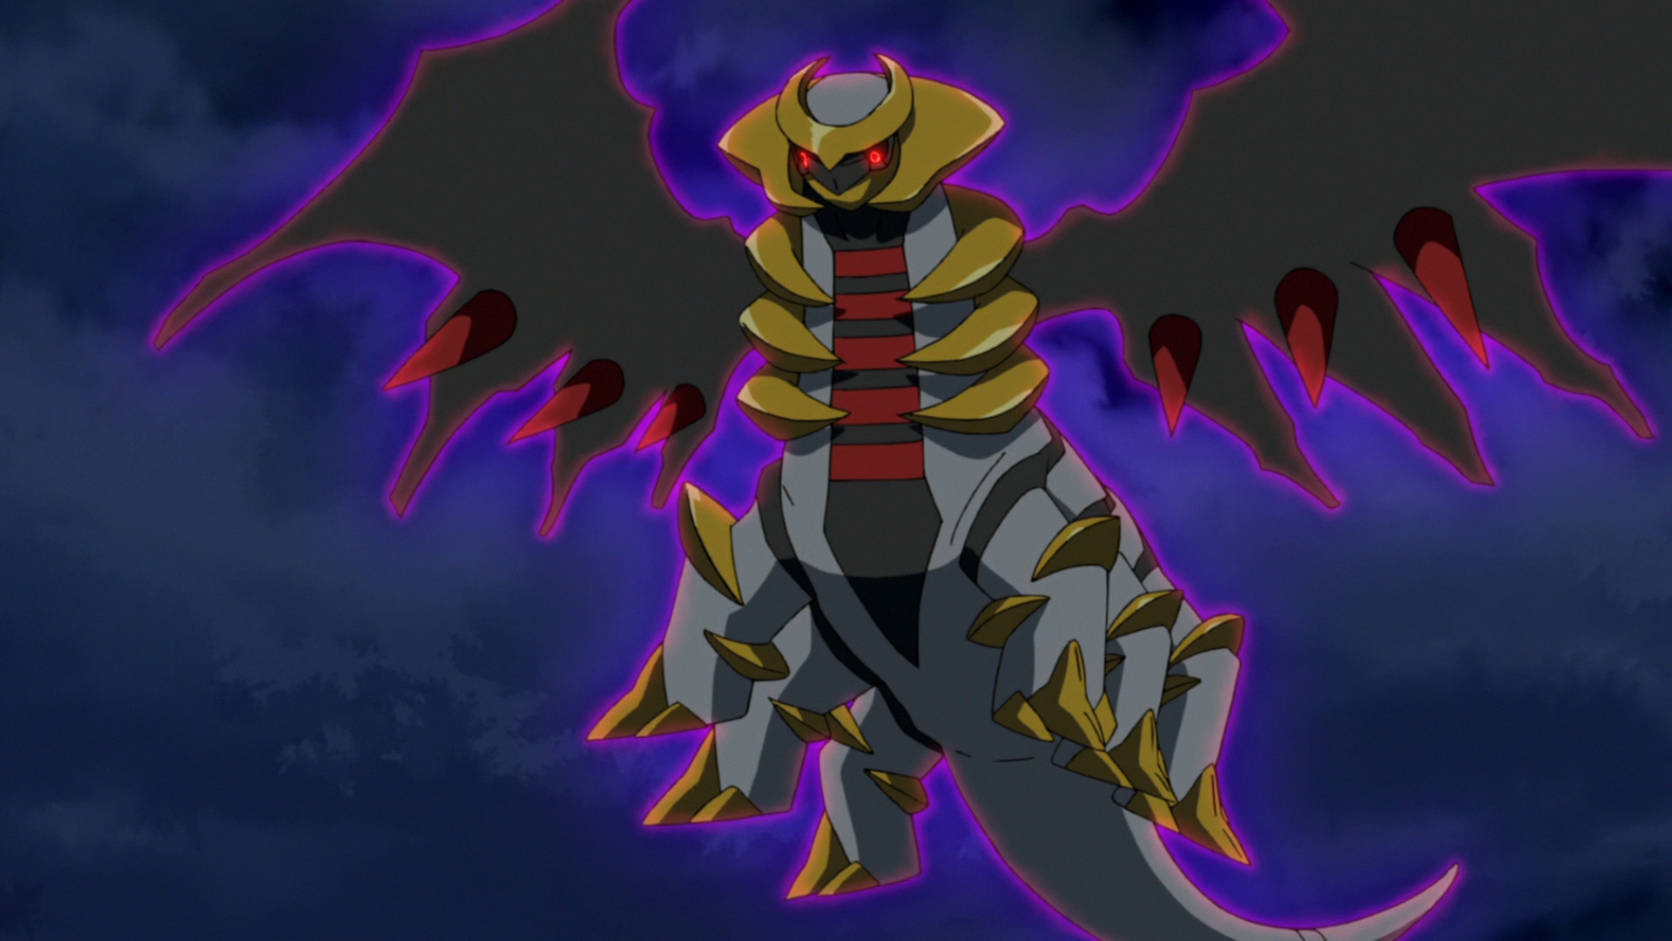 Giratina_M18 pokemon movie